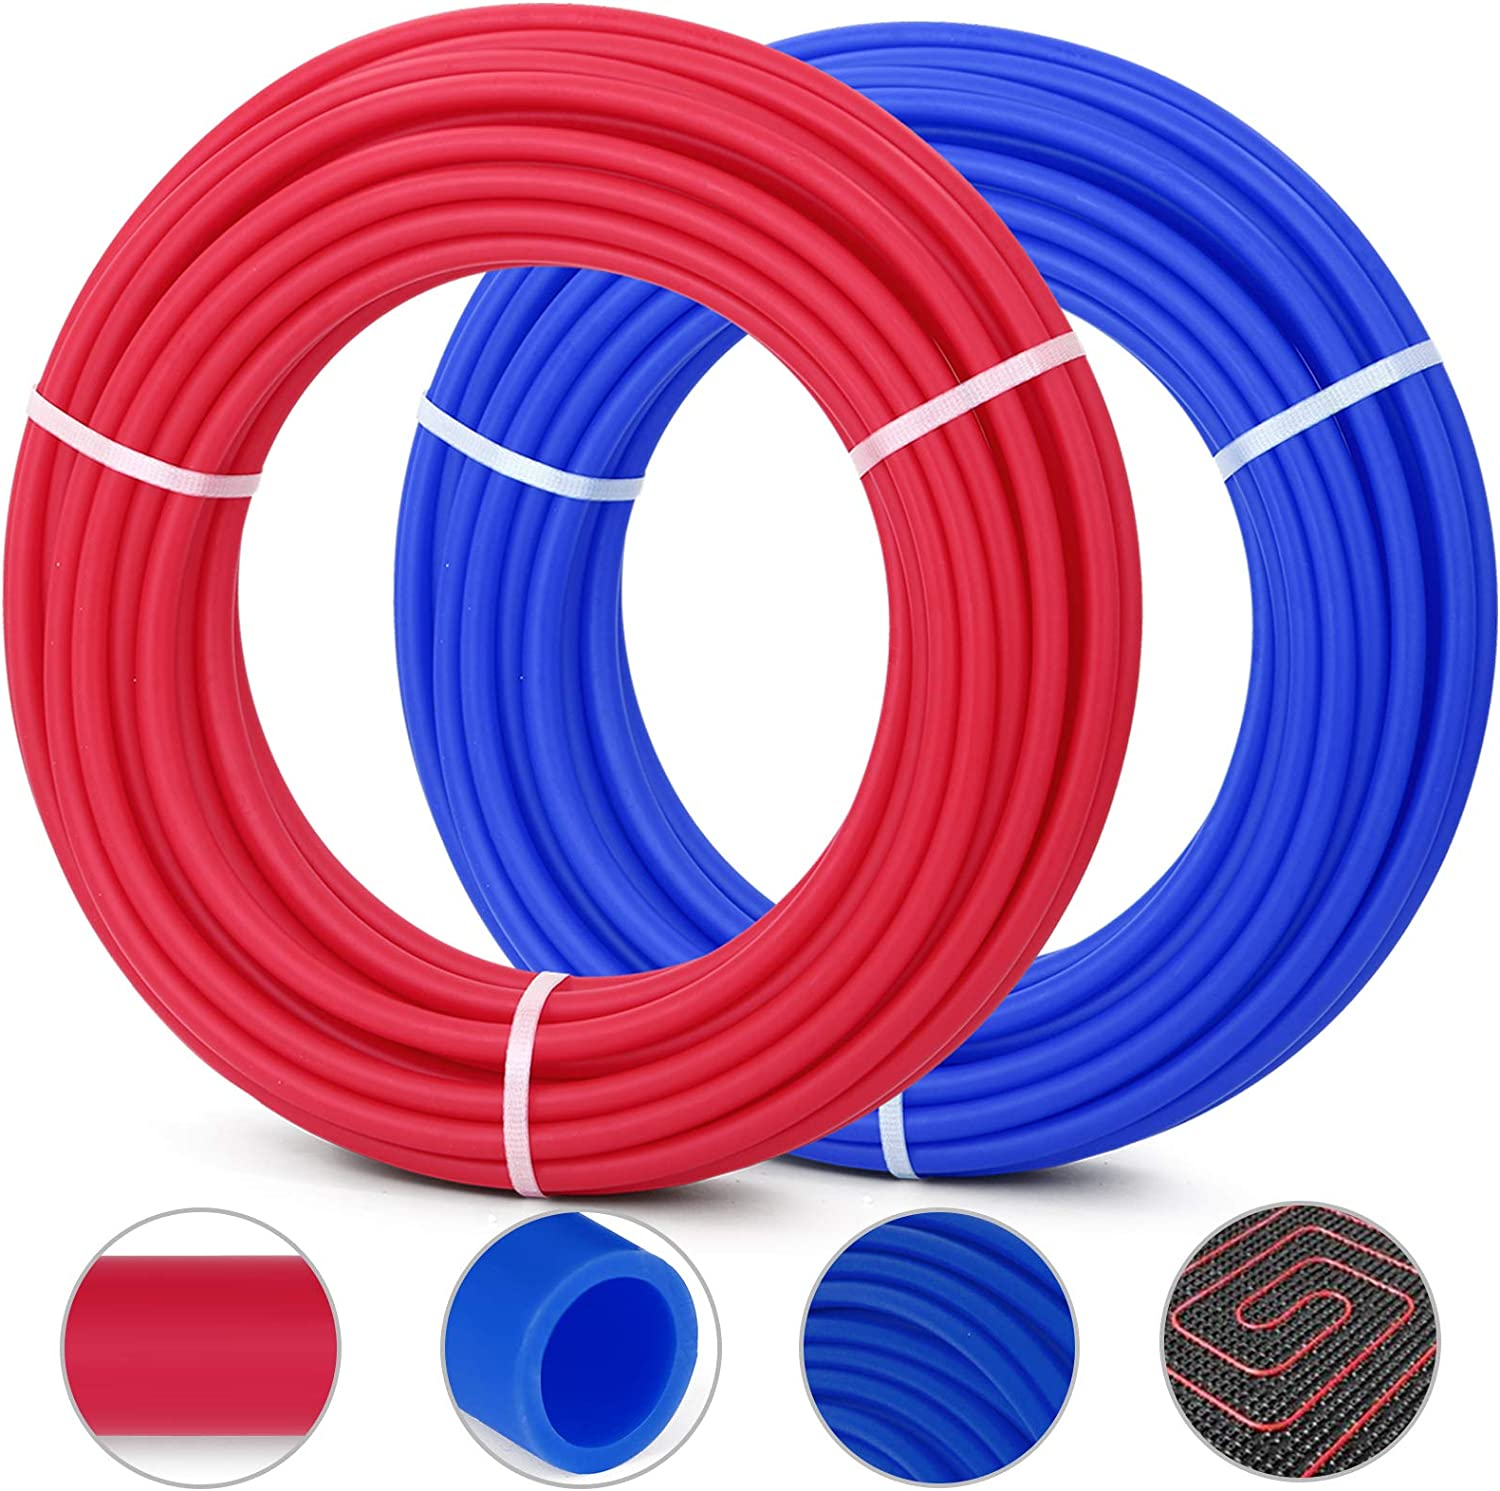 """1//2/"""" x 100ft PEX Tubing for Potable Water FREE SHIPPING"""